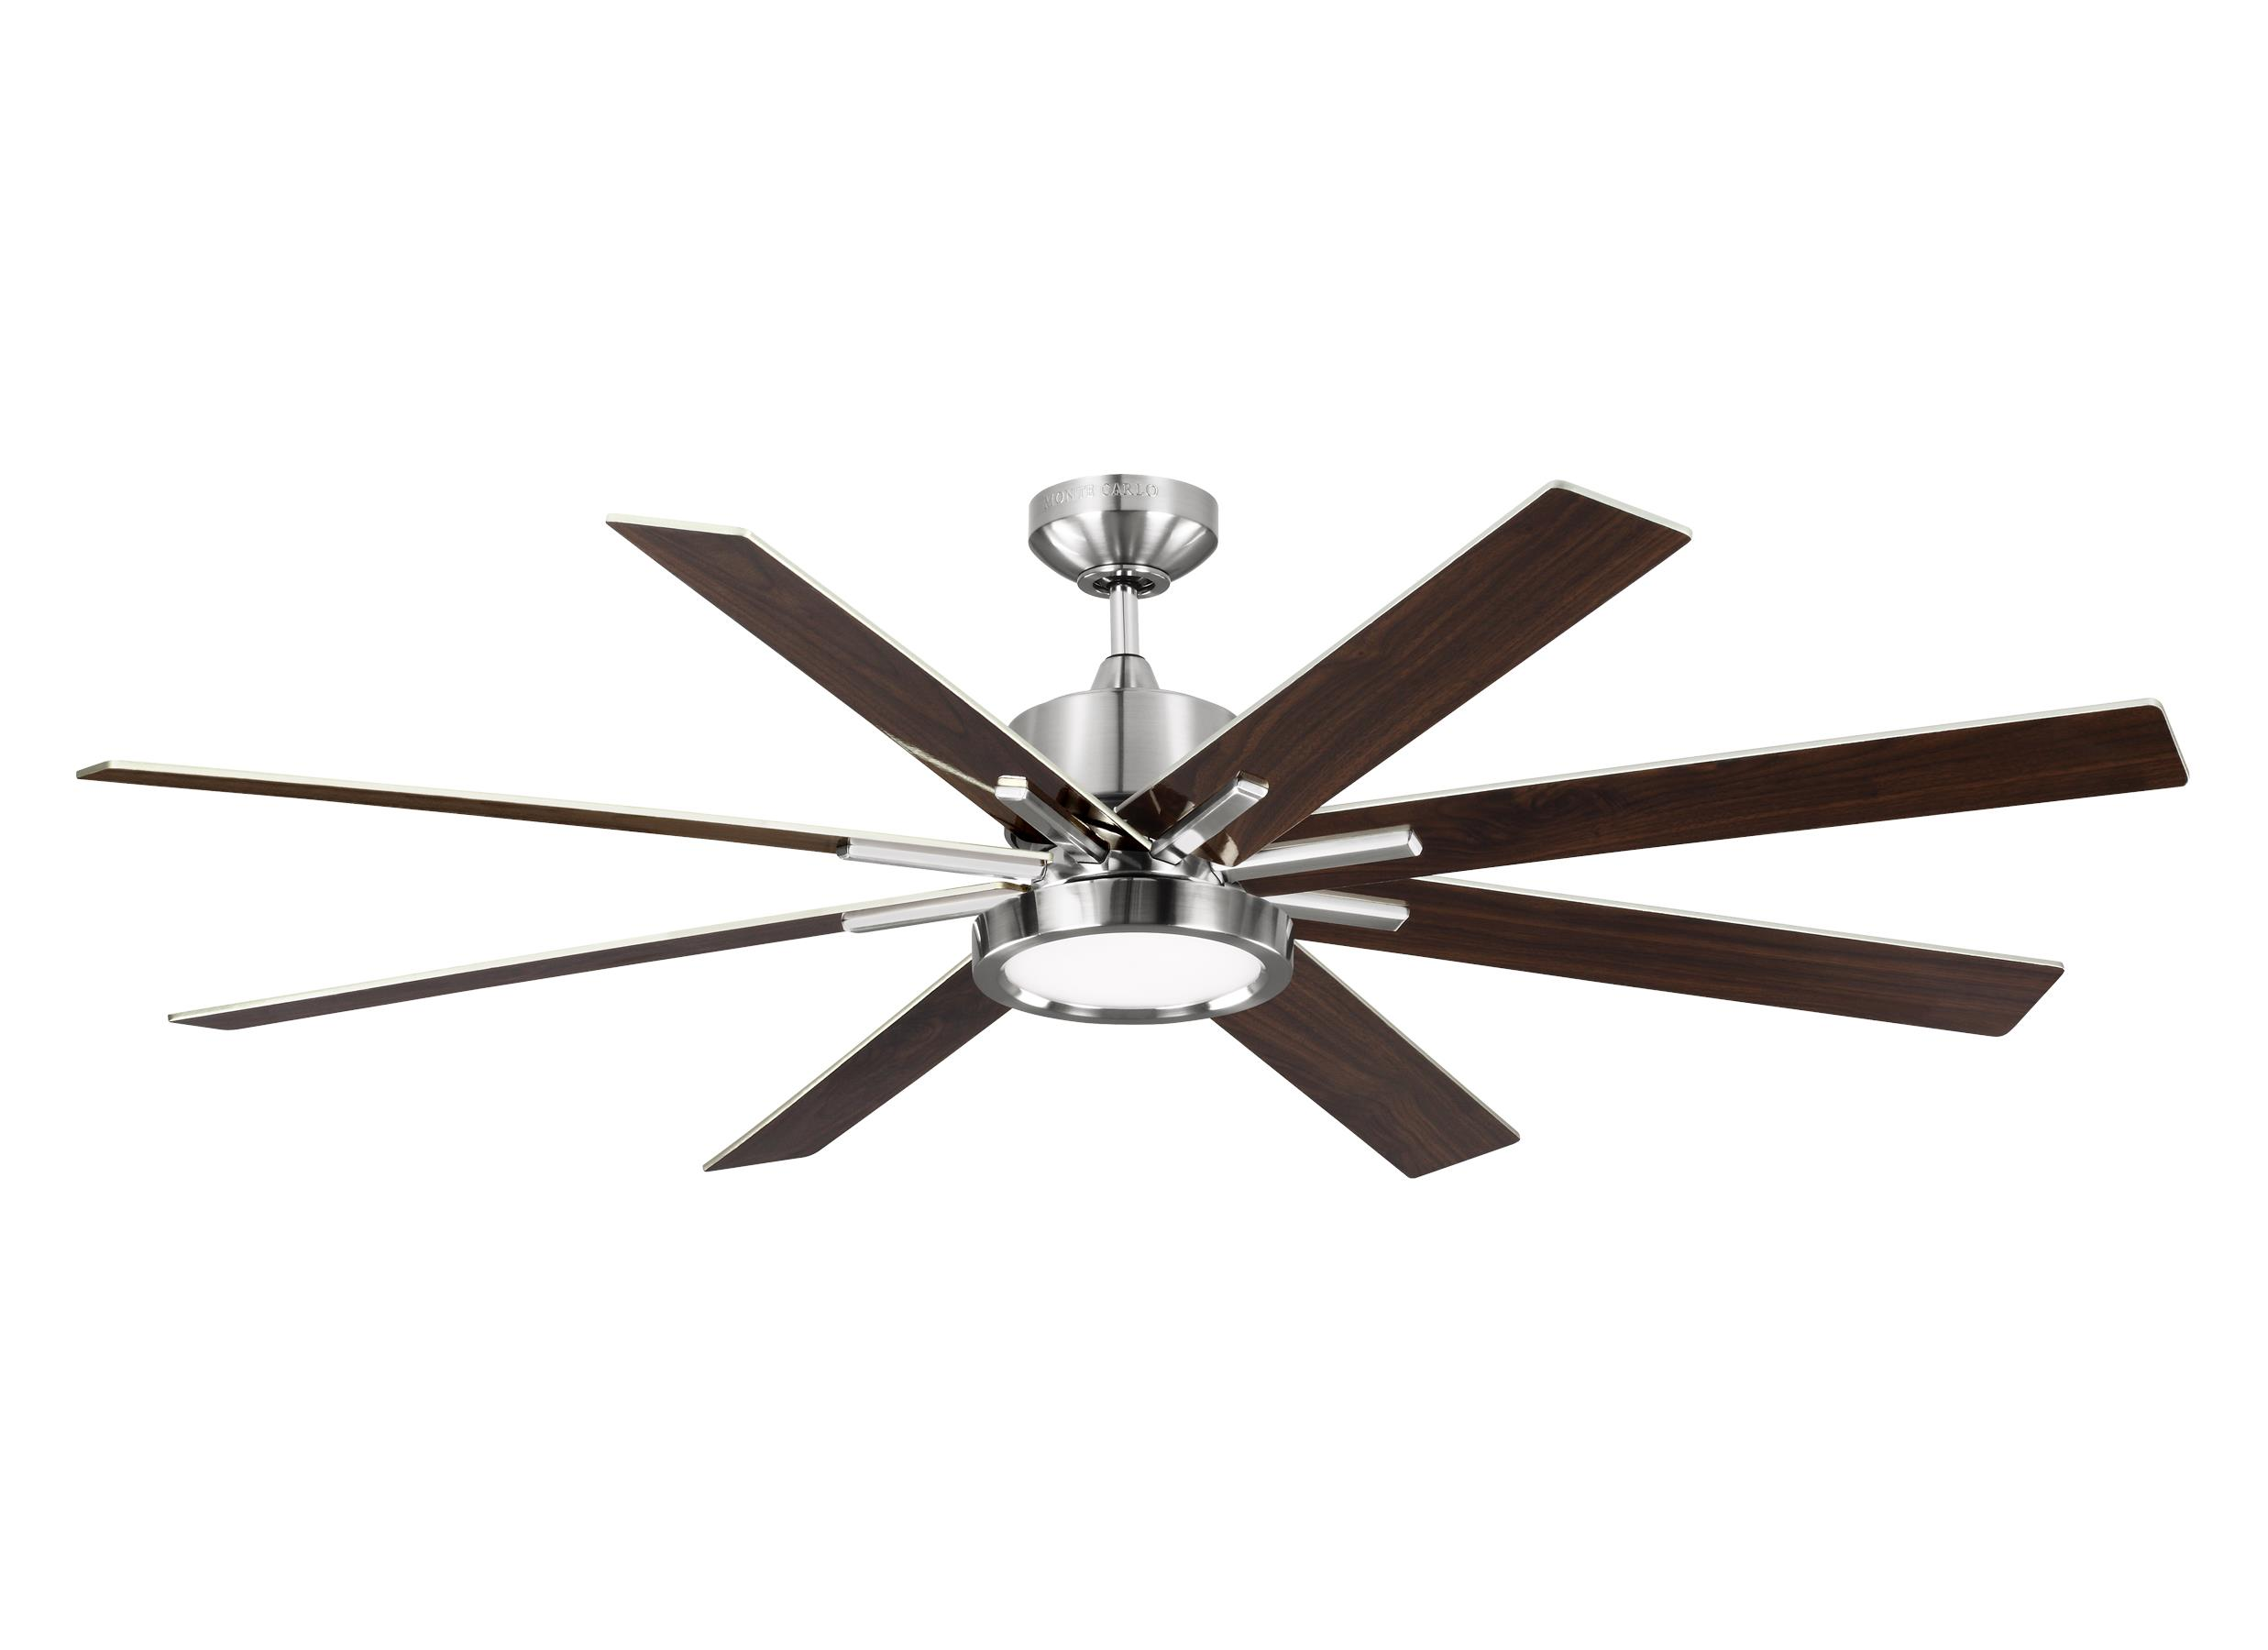 cut fan miami a how to downrod ceiling dans city